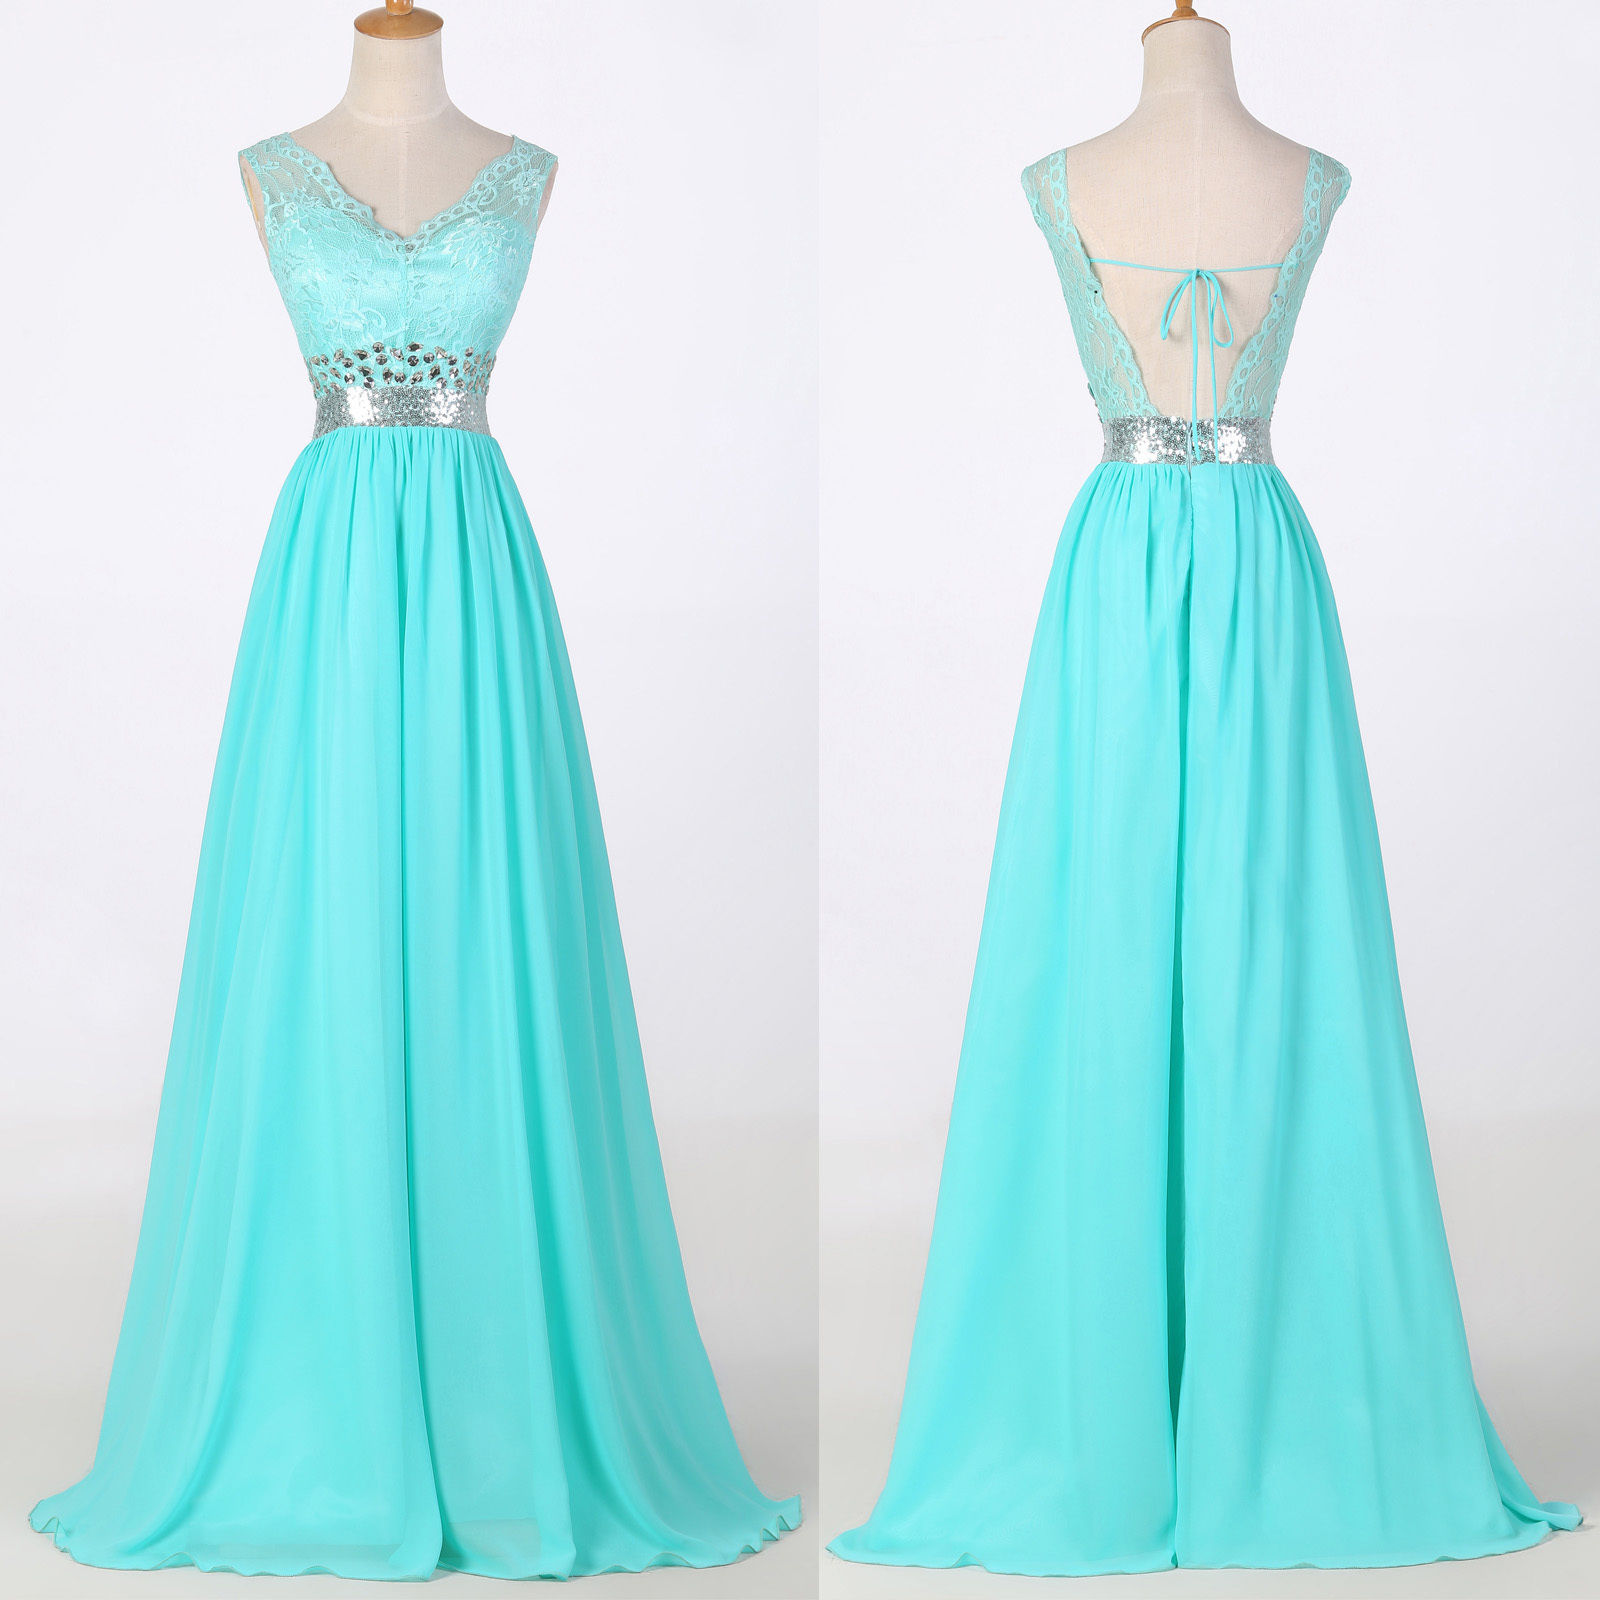 2015 plus size long dress prom evening gown ball party for Formal dress for wedding plus size